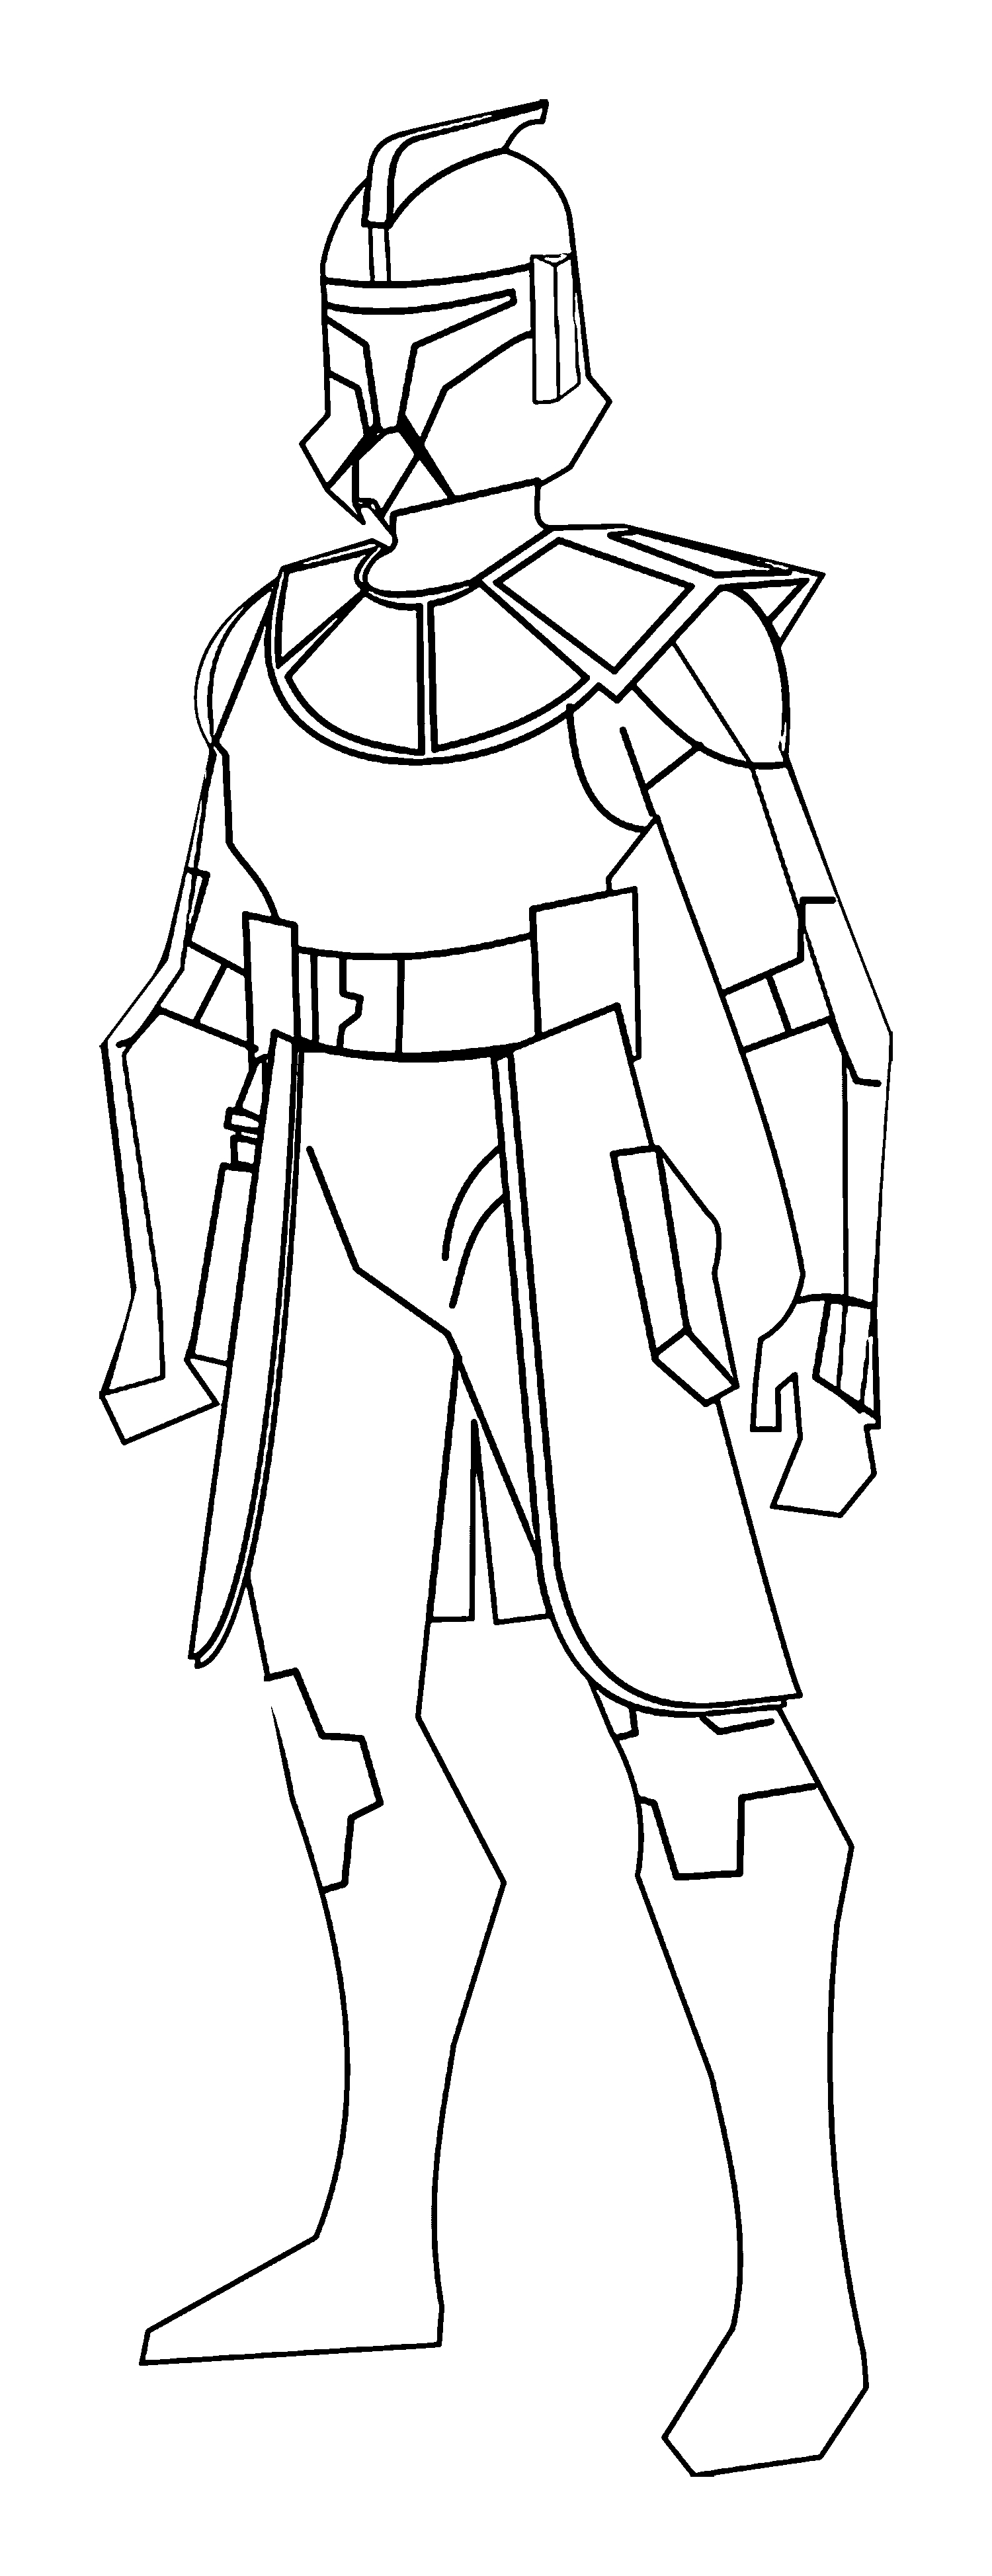 1500x3896 Clone Trooper Coloring Pages Pictures Free Coloring Pages